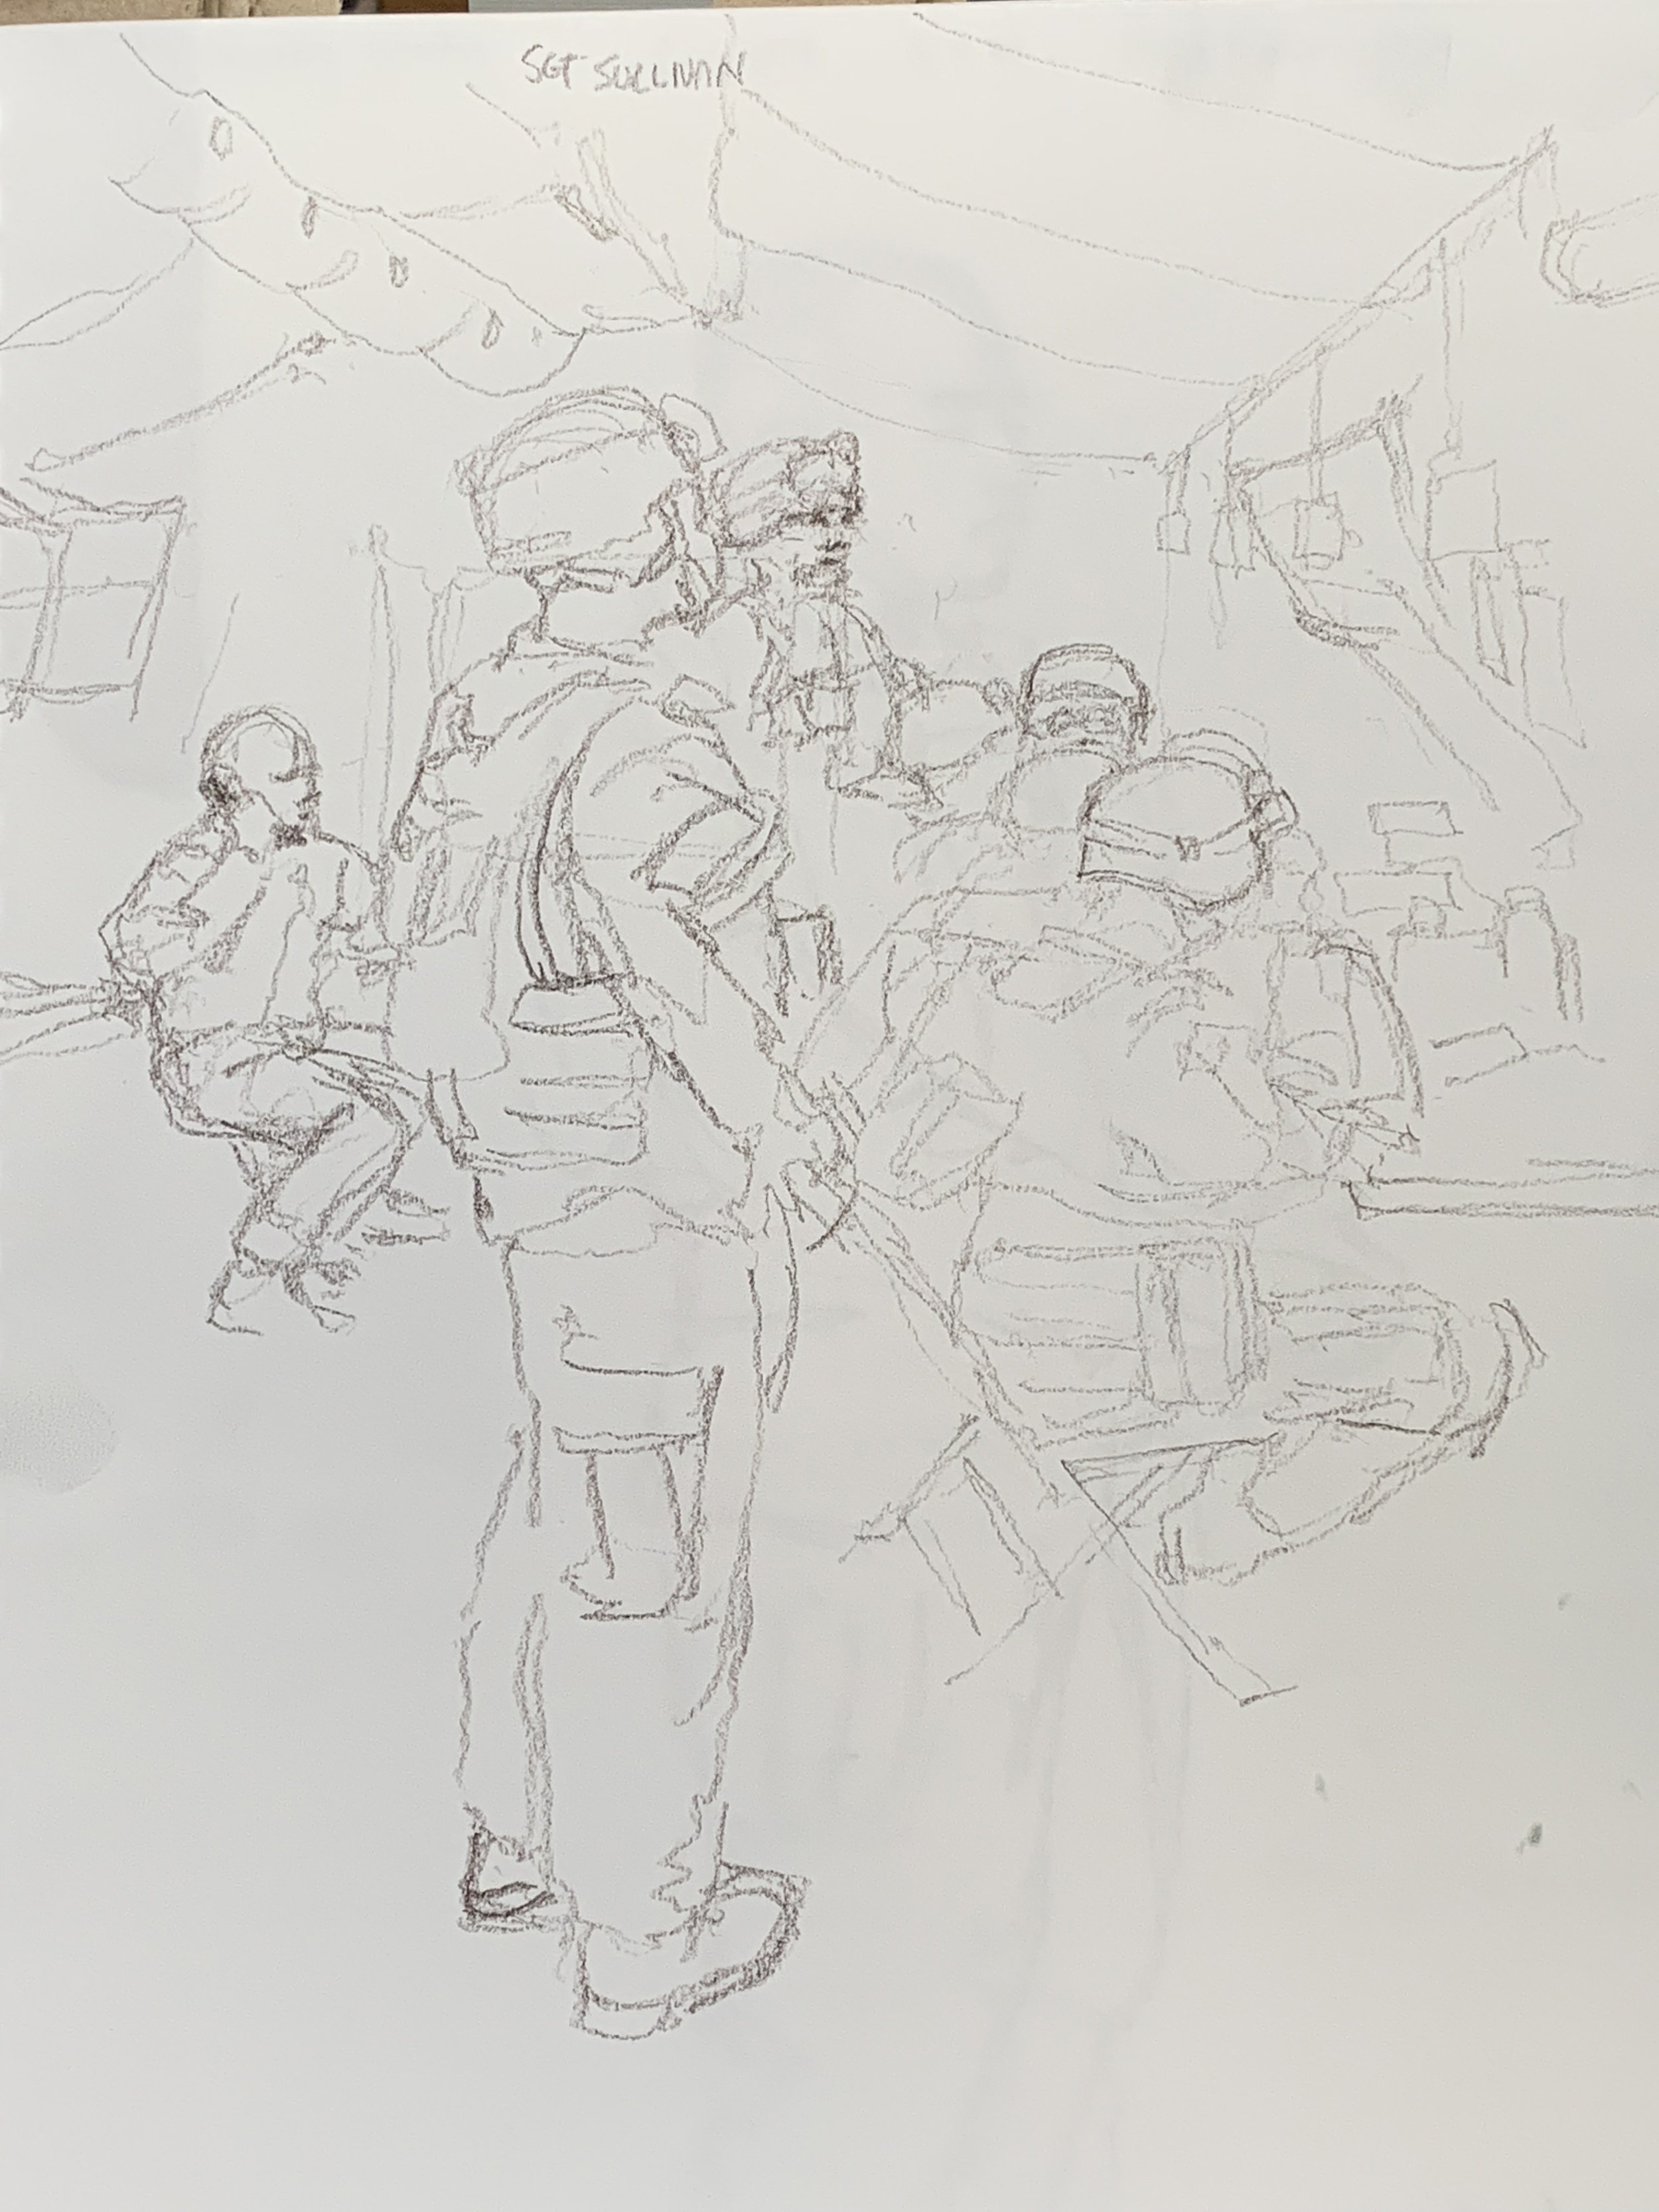 A brief calm moment in the BDoc during a simulated emergency at the airfield.  Helmets and flacks, because an attack on their position was announced.